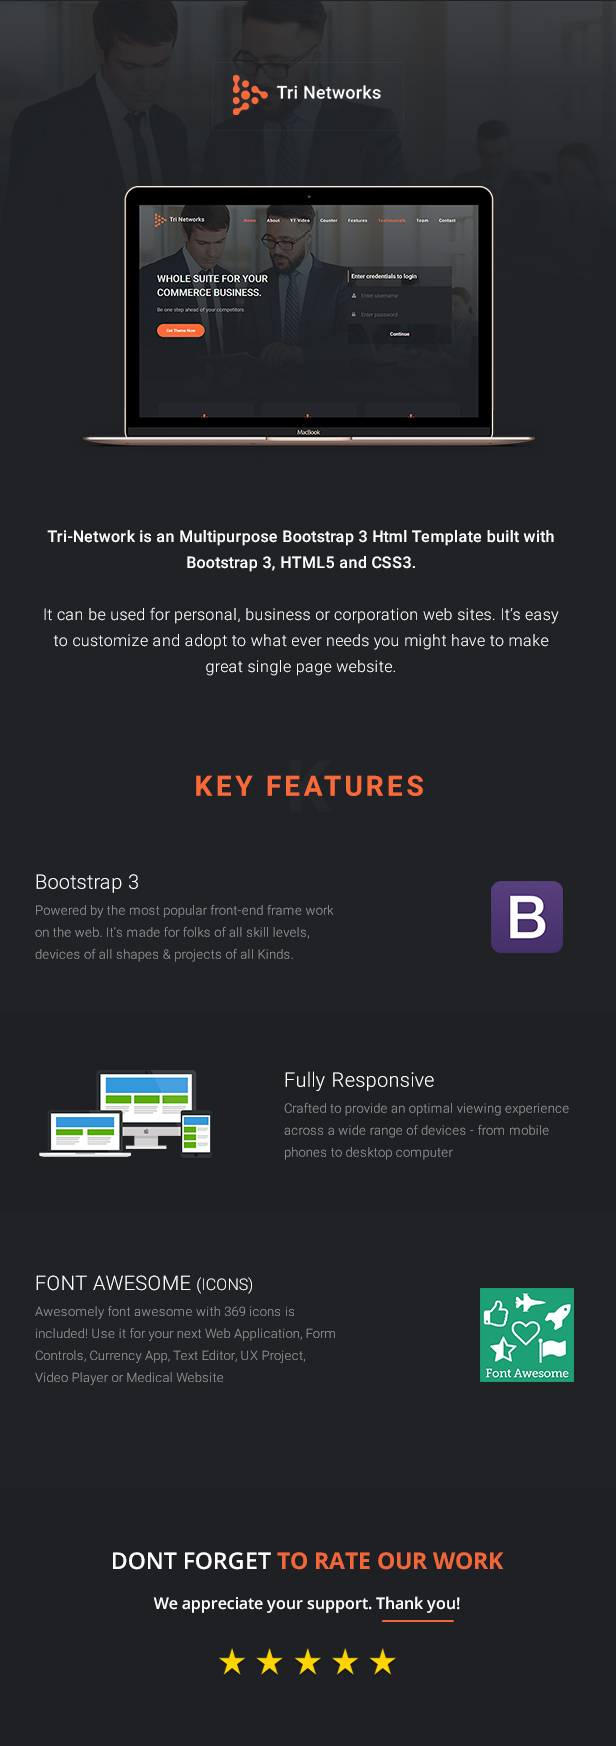 Tri Network - Multipurpose Bootstrap 3 Html Template by Design_Gurus